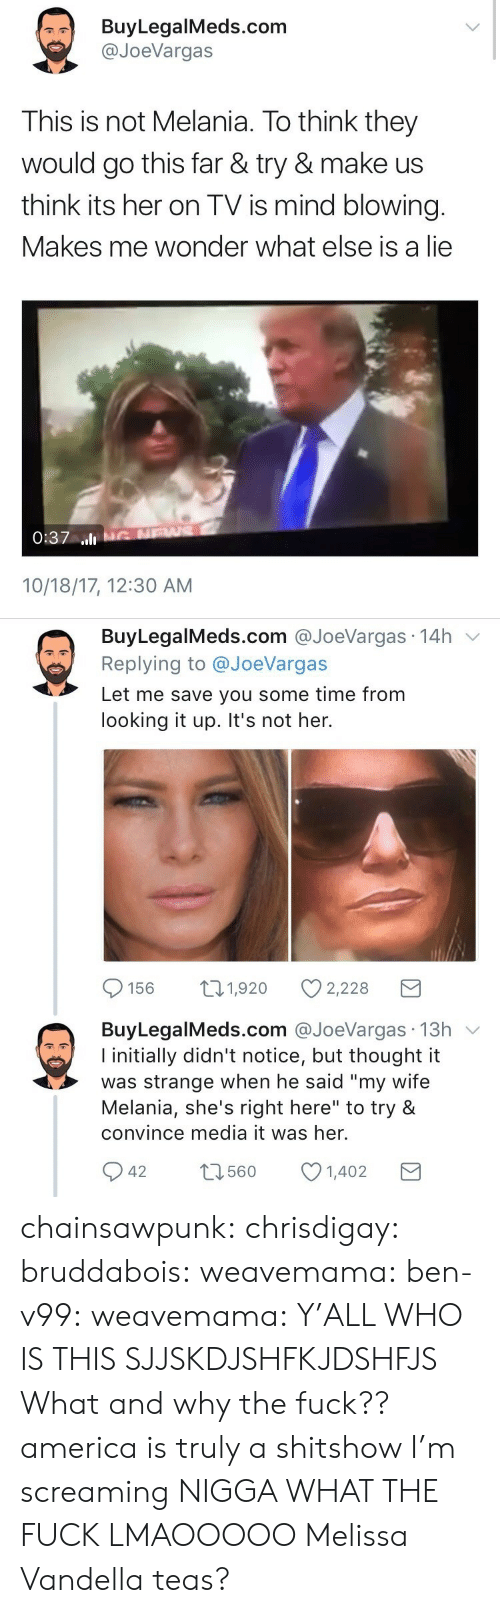 """Shes Right: BuyLegalMeds.com  @JoeVargas  This is not Melania. To think they  would go this far & try & make us  think its her on TV is mind blowing.  Makes me wonder what else is a lie  0:37 ll  10/18/17, 12:30 AM   BuyLegalMeds.com @JoeVargas 14h v  Replying to @JoeVargas  Let me save you some time from  looking it up. It's not her.  156 t1,920 2,228  BuyLegalMeds.com @JoeVargas 13h v  I initially didn't notice, but thought it  was strange when he said """"my wife  Melania, she's right here"""" to try &  convince media it was her.  42 1601402  t3560 chainsawpunk:  chrisdigay:   bruddabois:  weavemama:  ben-v99:   weavemama:  Y'ALL WHO IS THIS SJJSKDJSHFKJDSHFJS  What and why the fuck??   america is truly a shitshow I'm screaming   NIGGA WHAT THE FUCK LMAOOOOO    Melissa Vandella teas?"""